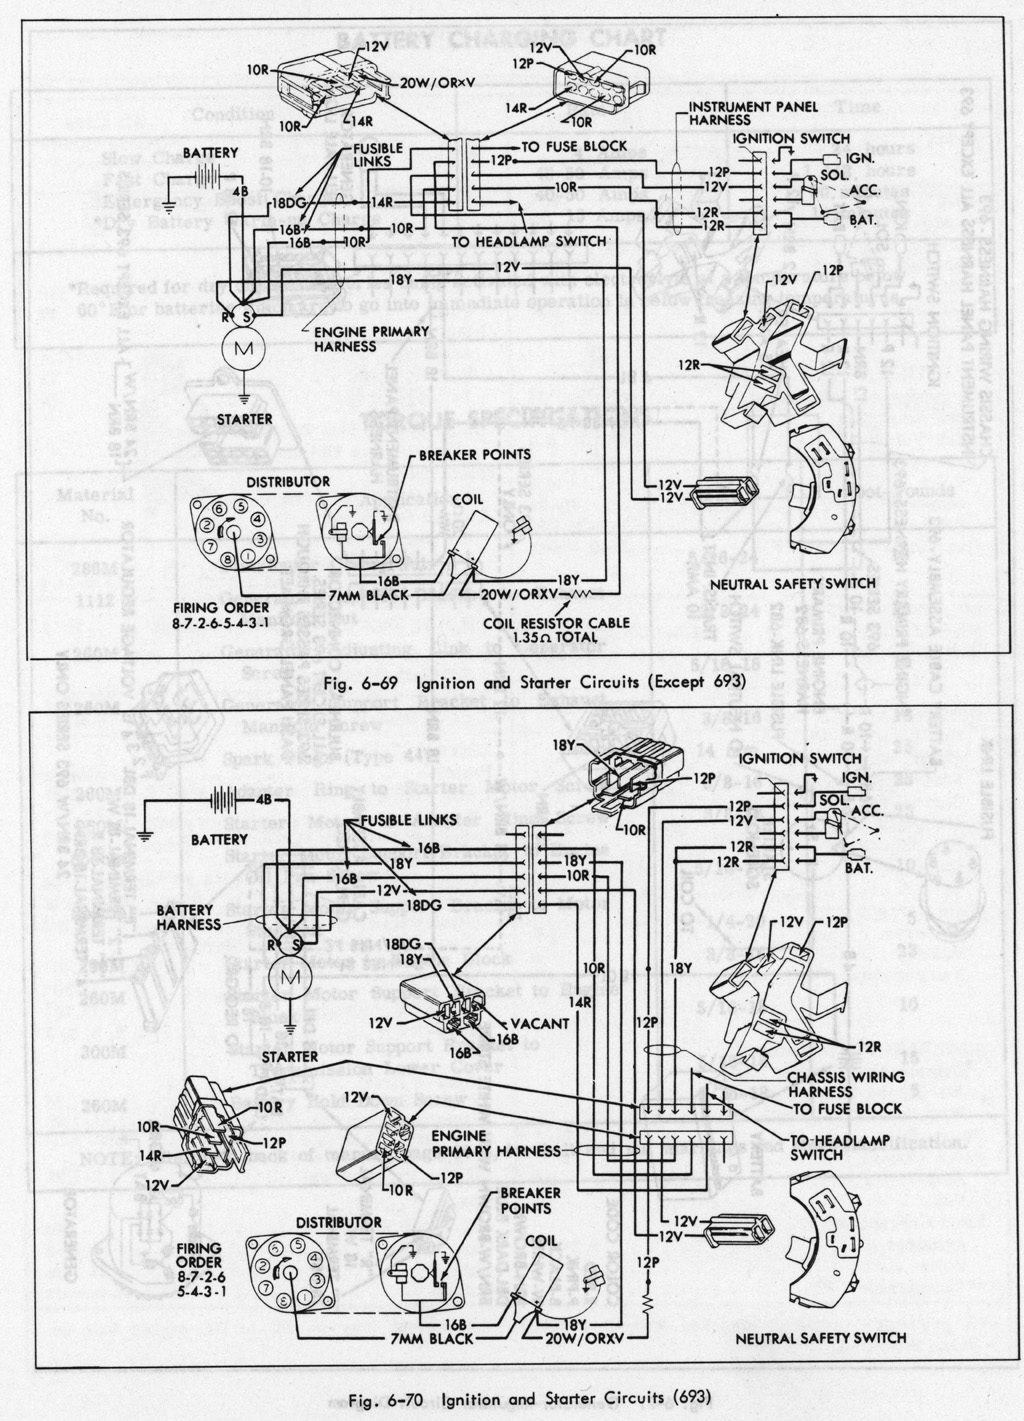 Ignition Diagram Geralds 1958 Cadillac Eldorado Seville